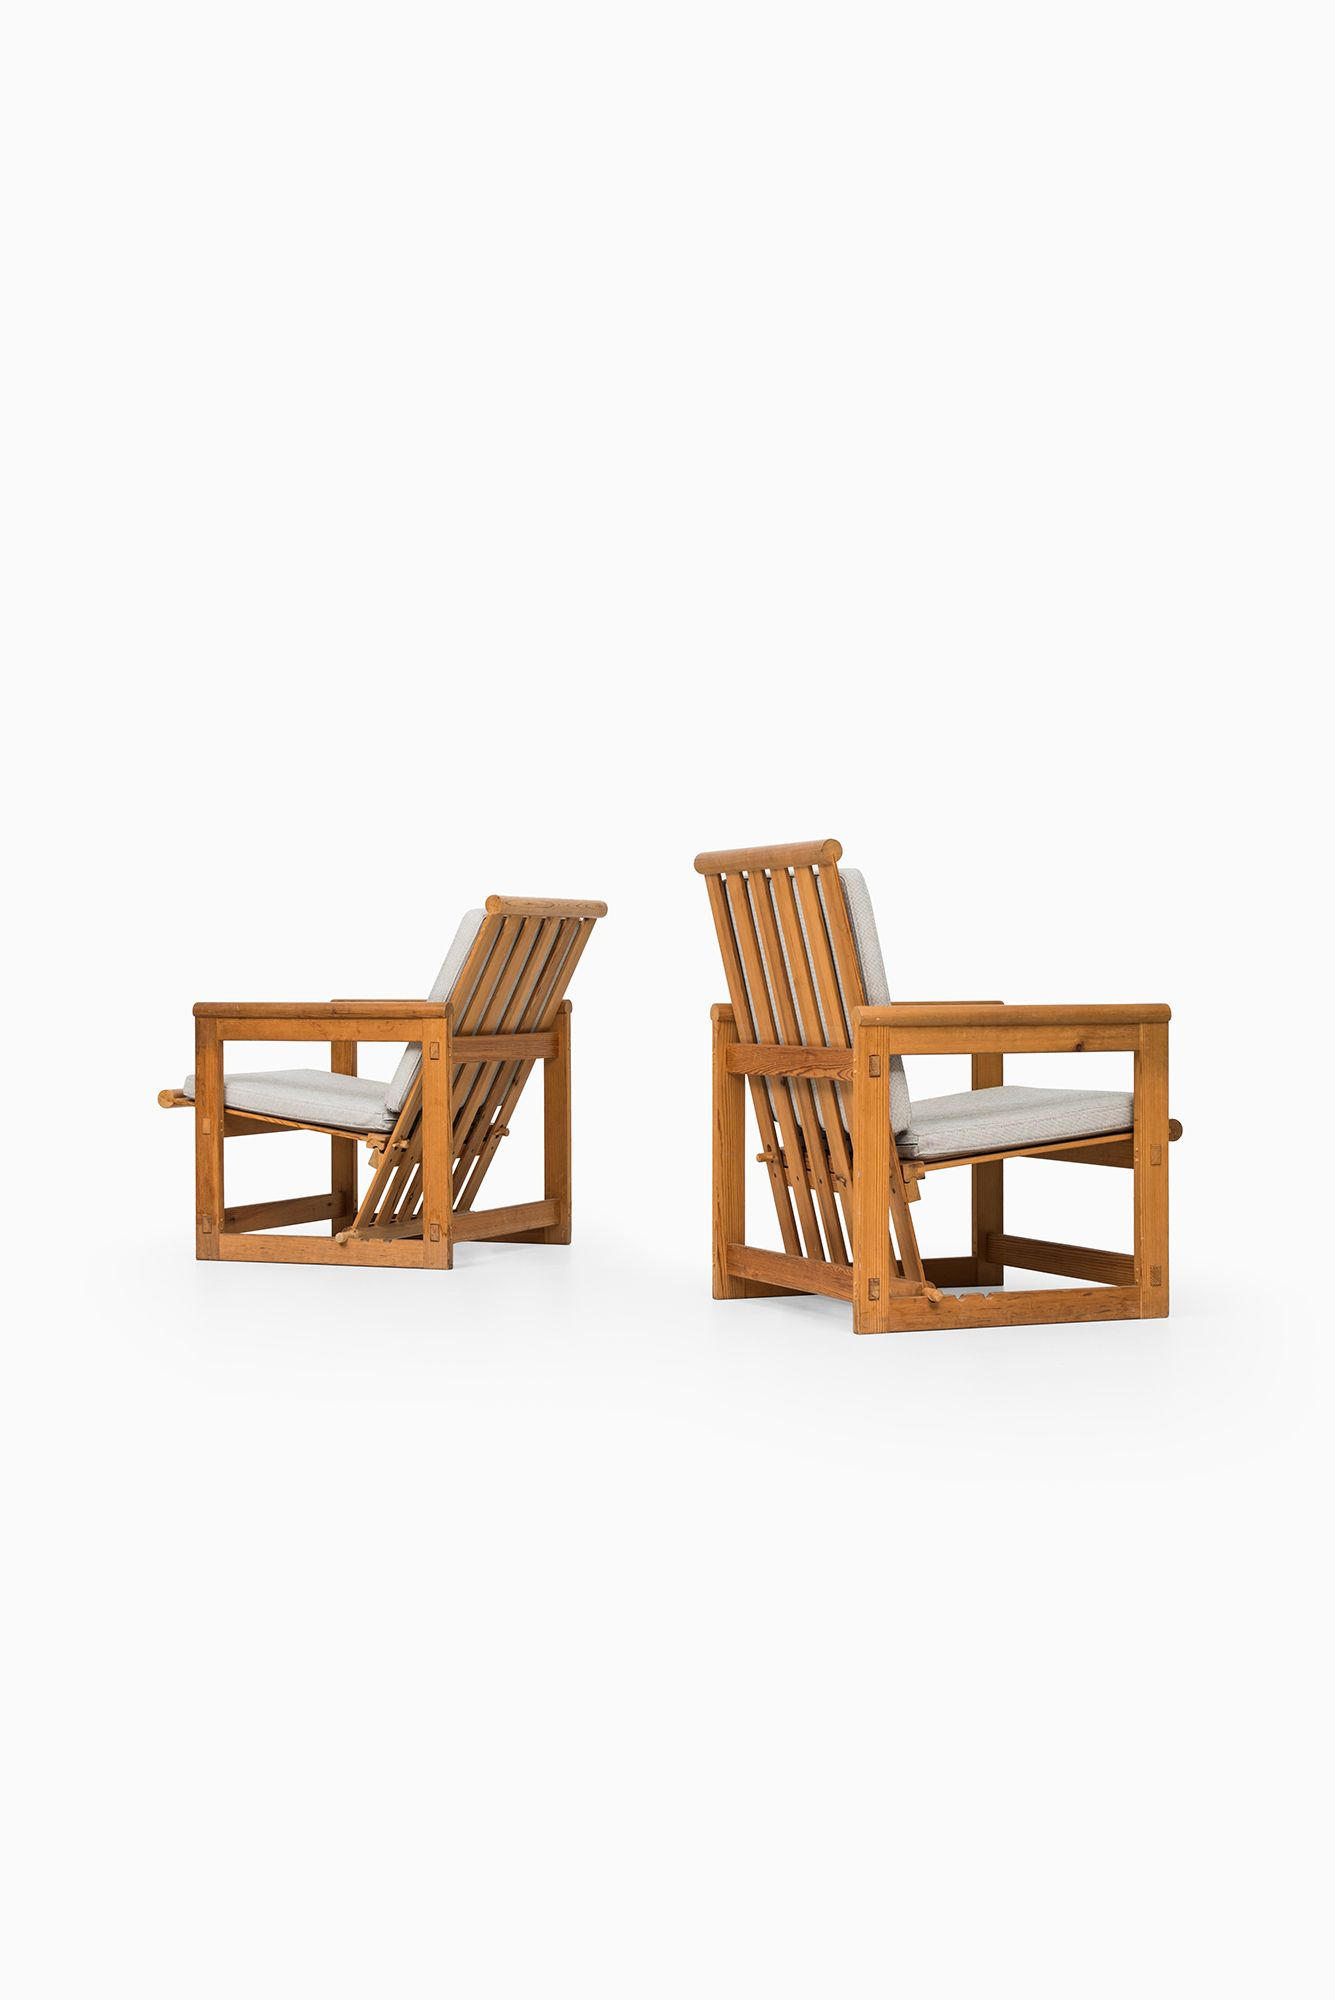 Edvin helseth easy chairs furnishing and lamps for Diseno de muebles de jardin al aire libre